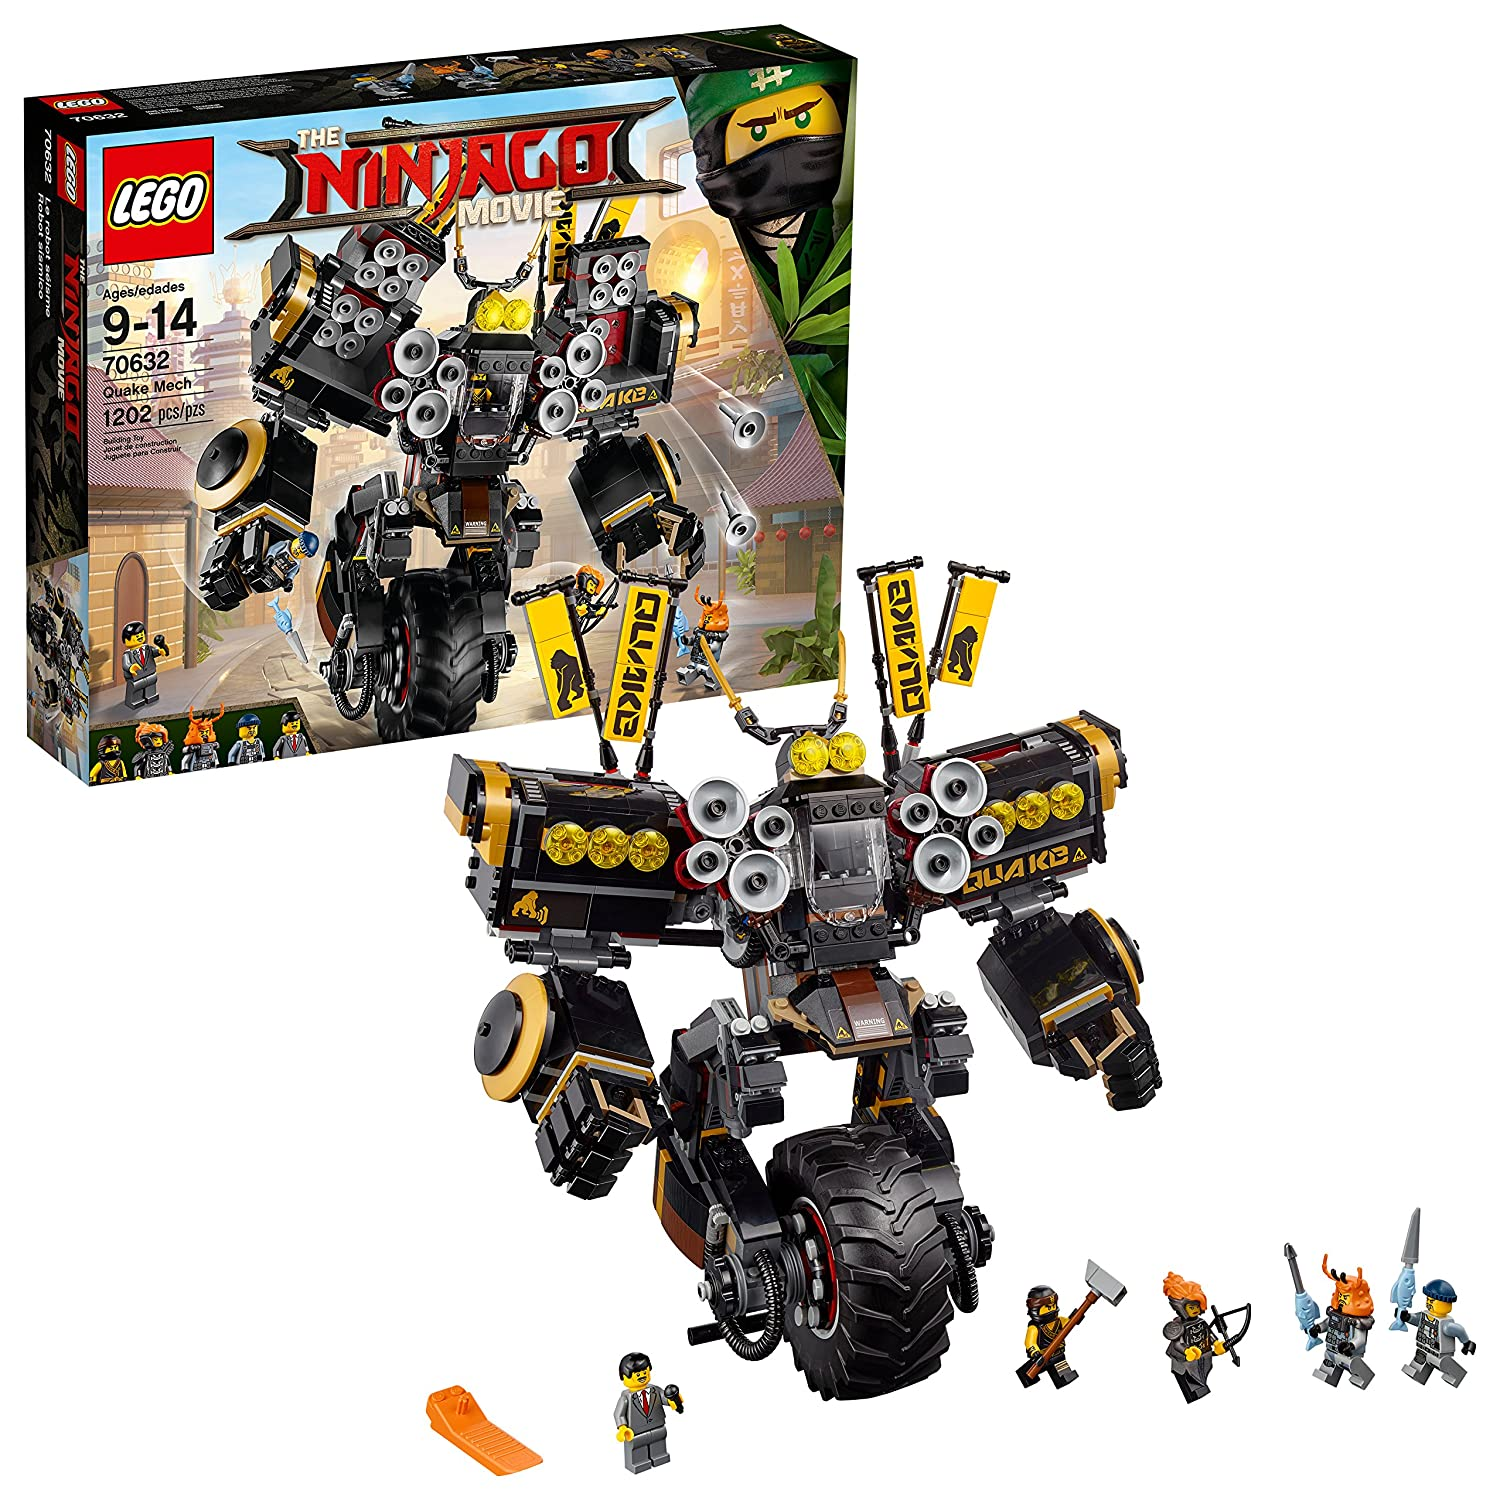 LEGO Ninjago Movie Quake Mech 70632 Toy 6210202